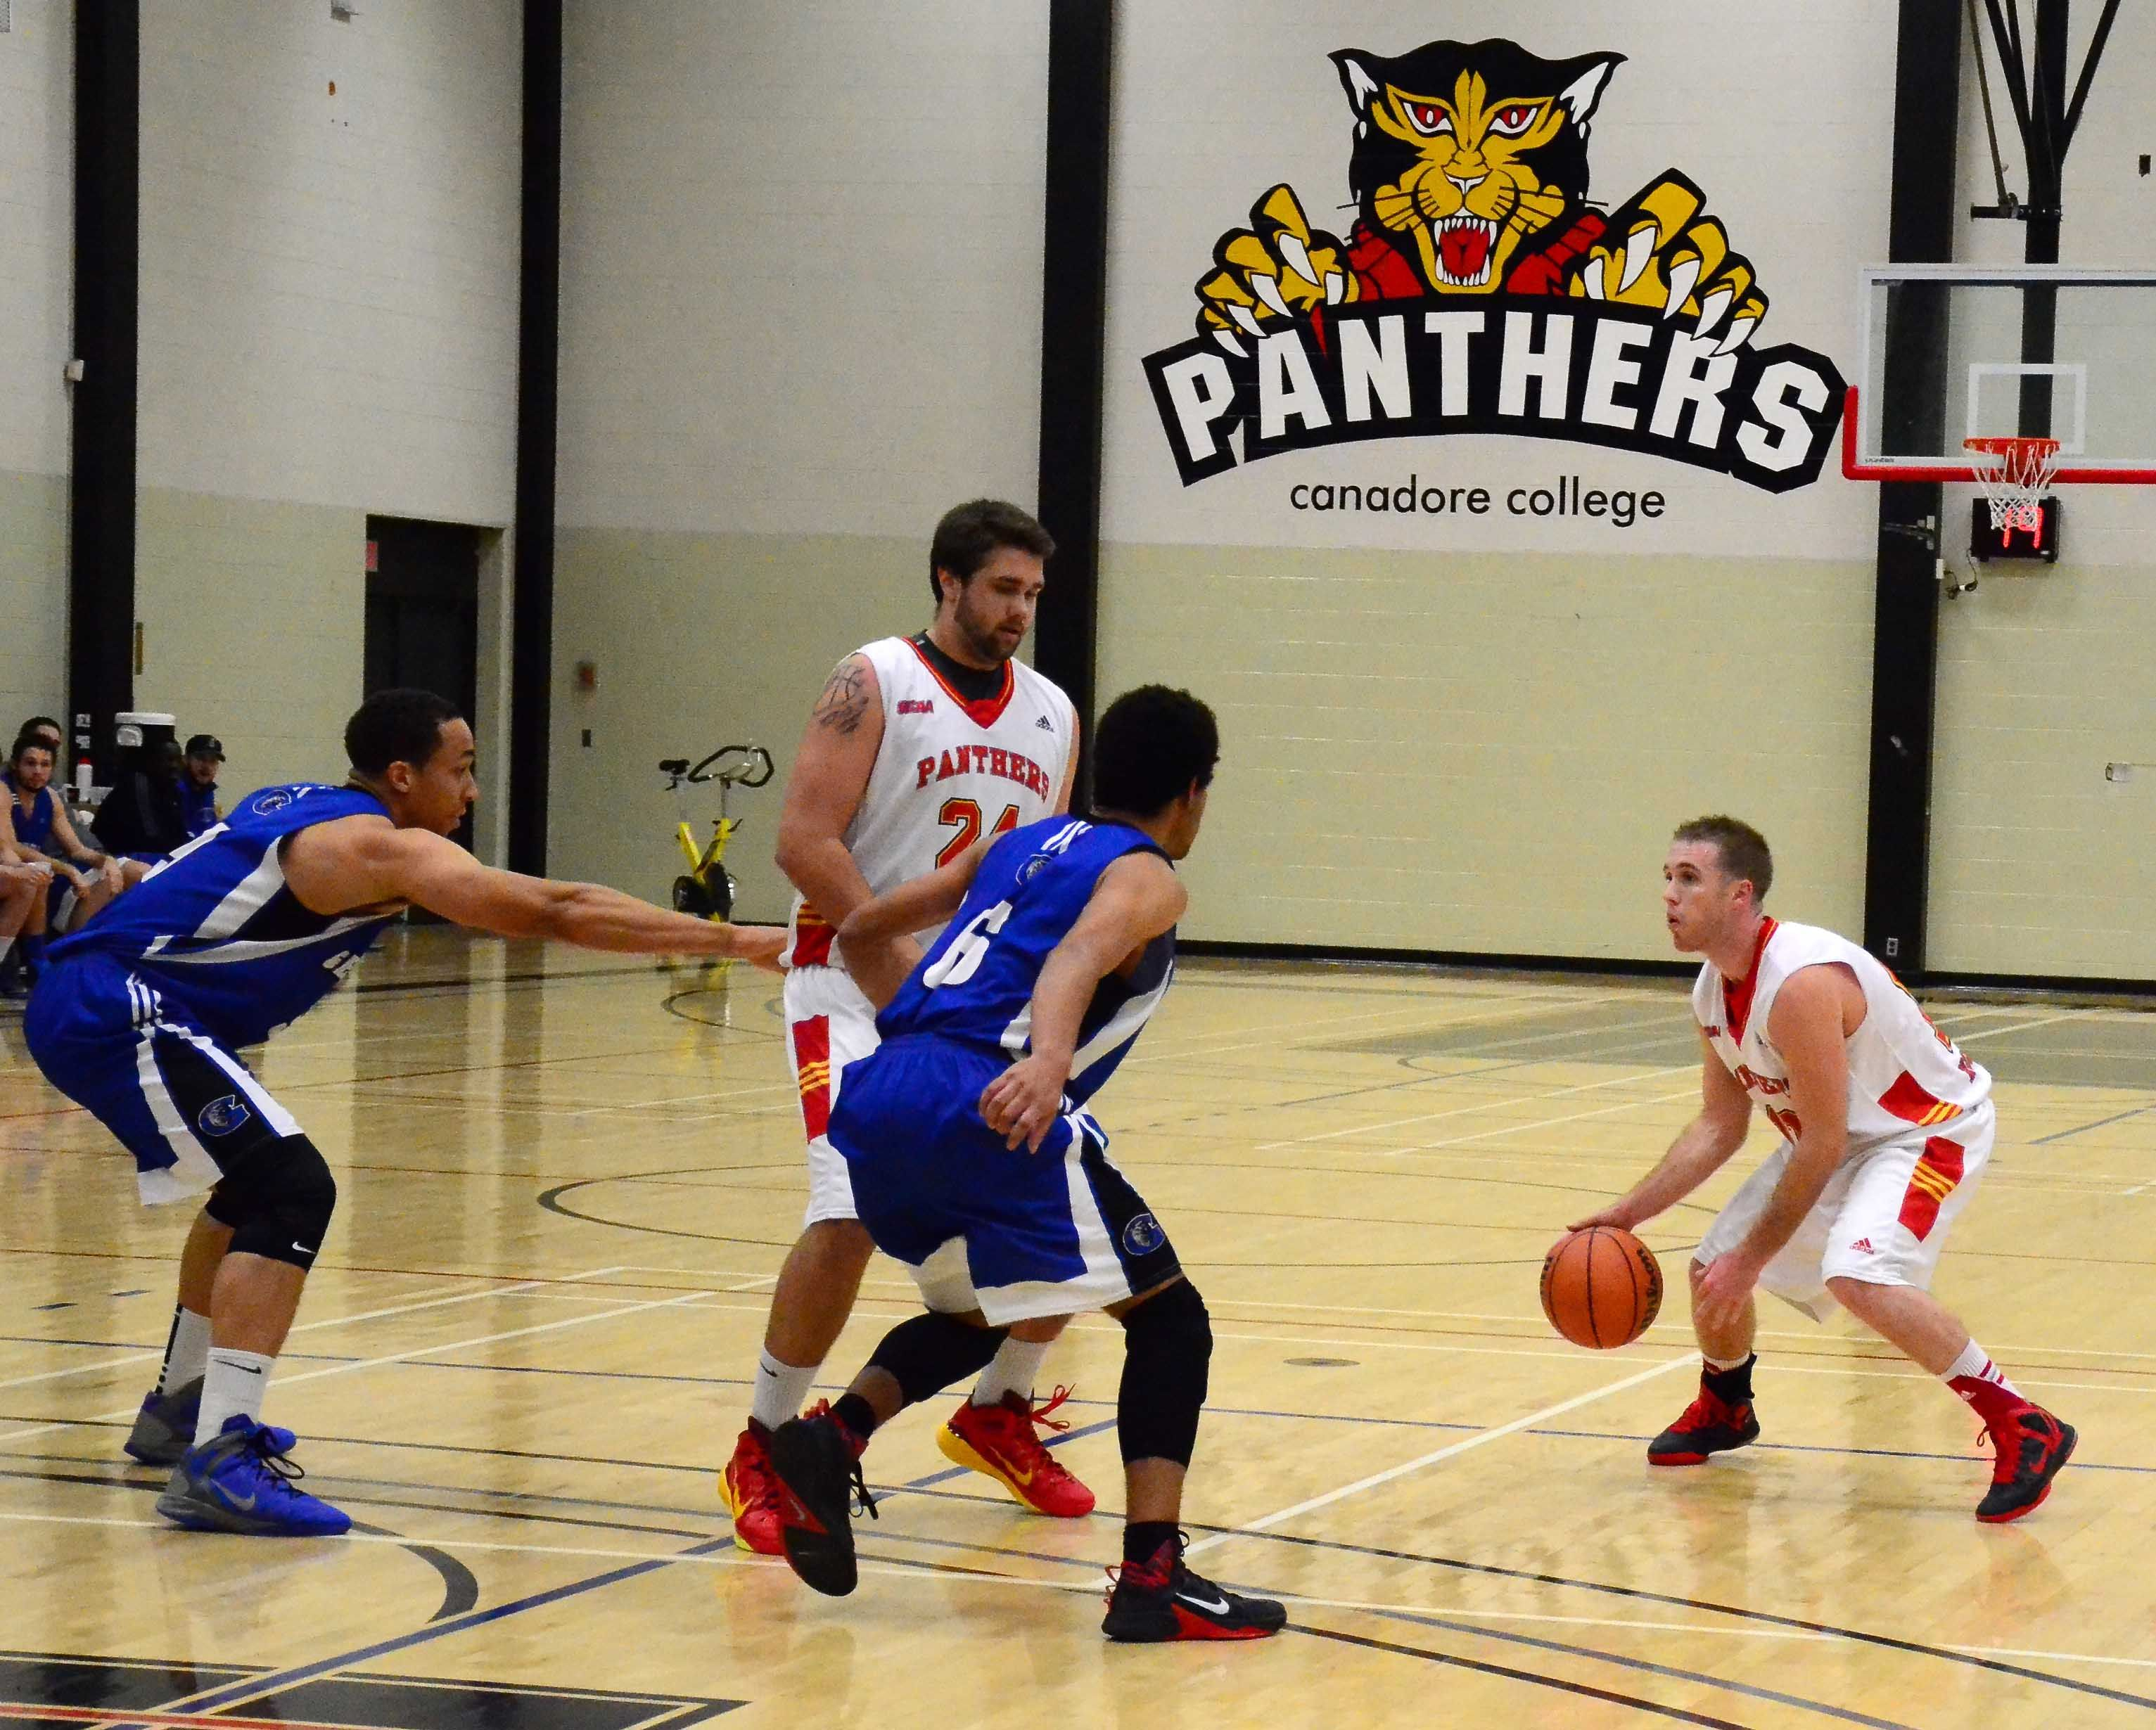 Men's Varsity Basketball http//www.canadorecollege.ca